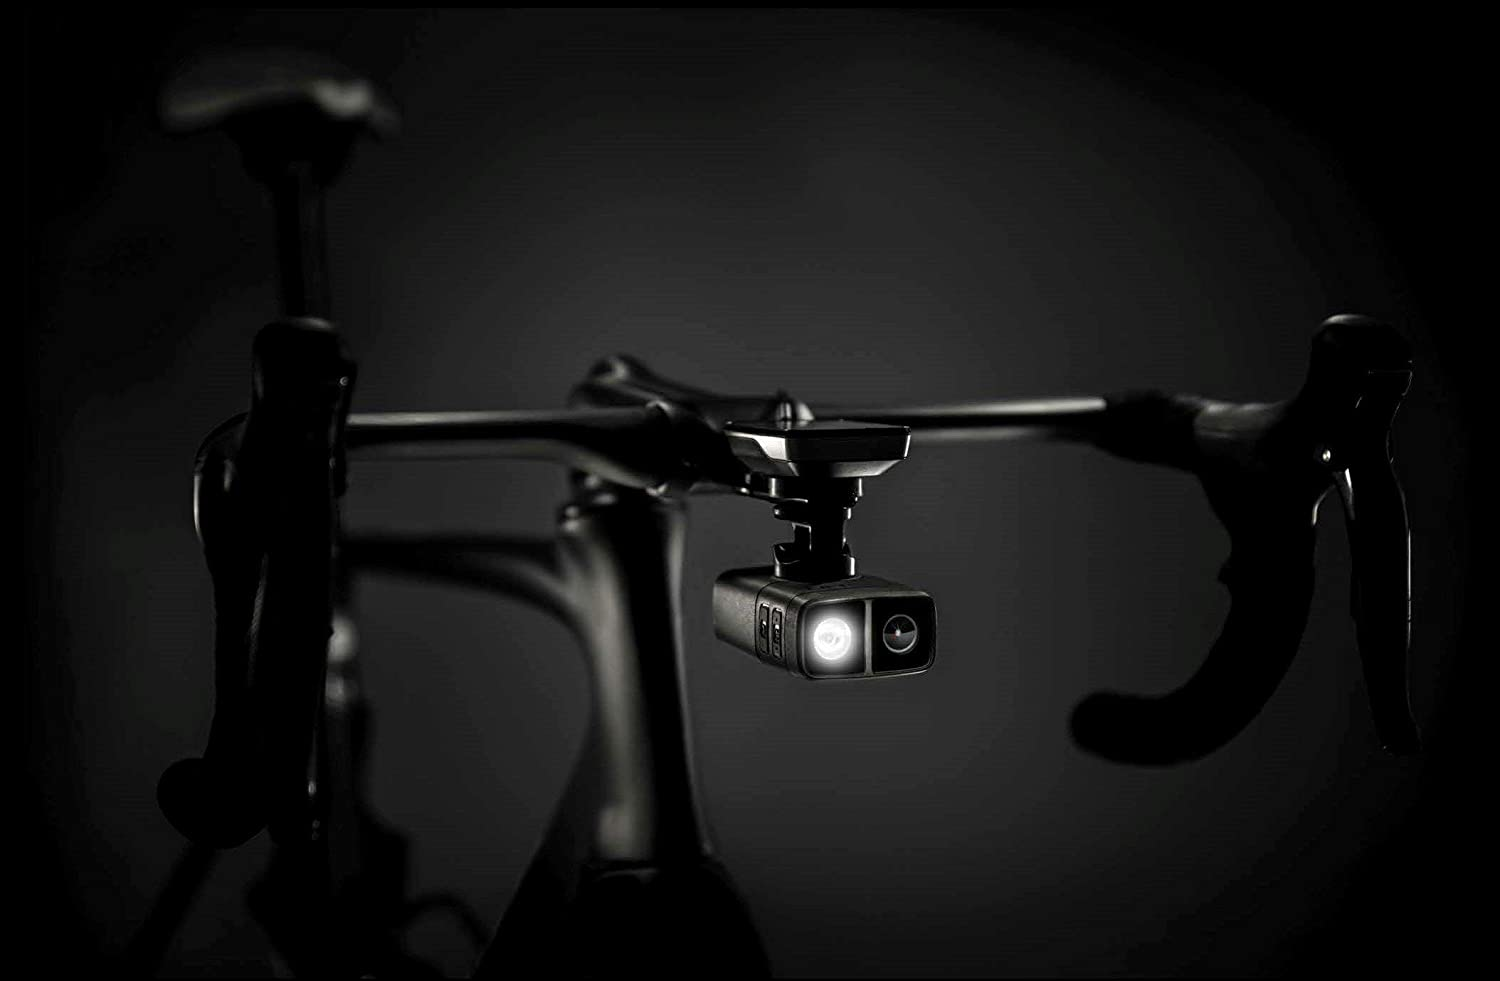 Cycliq Fly12 CE - Cámara Frontal para Bicicleta: Amazon.es ...